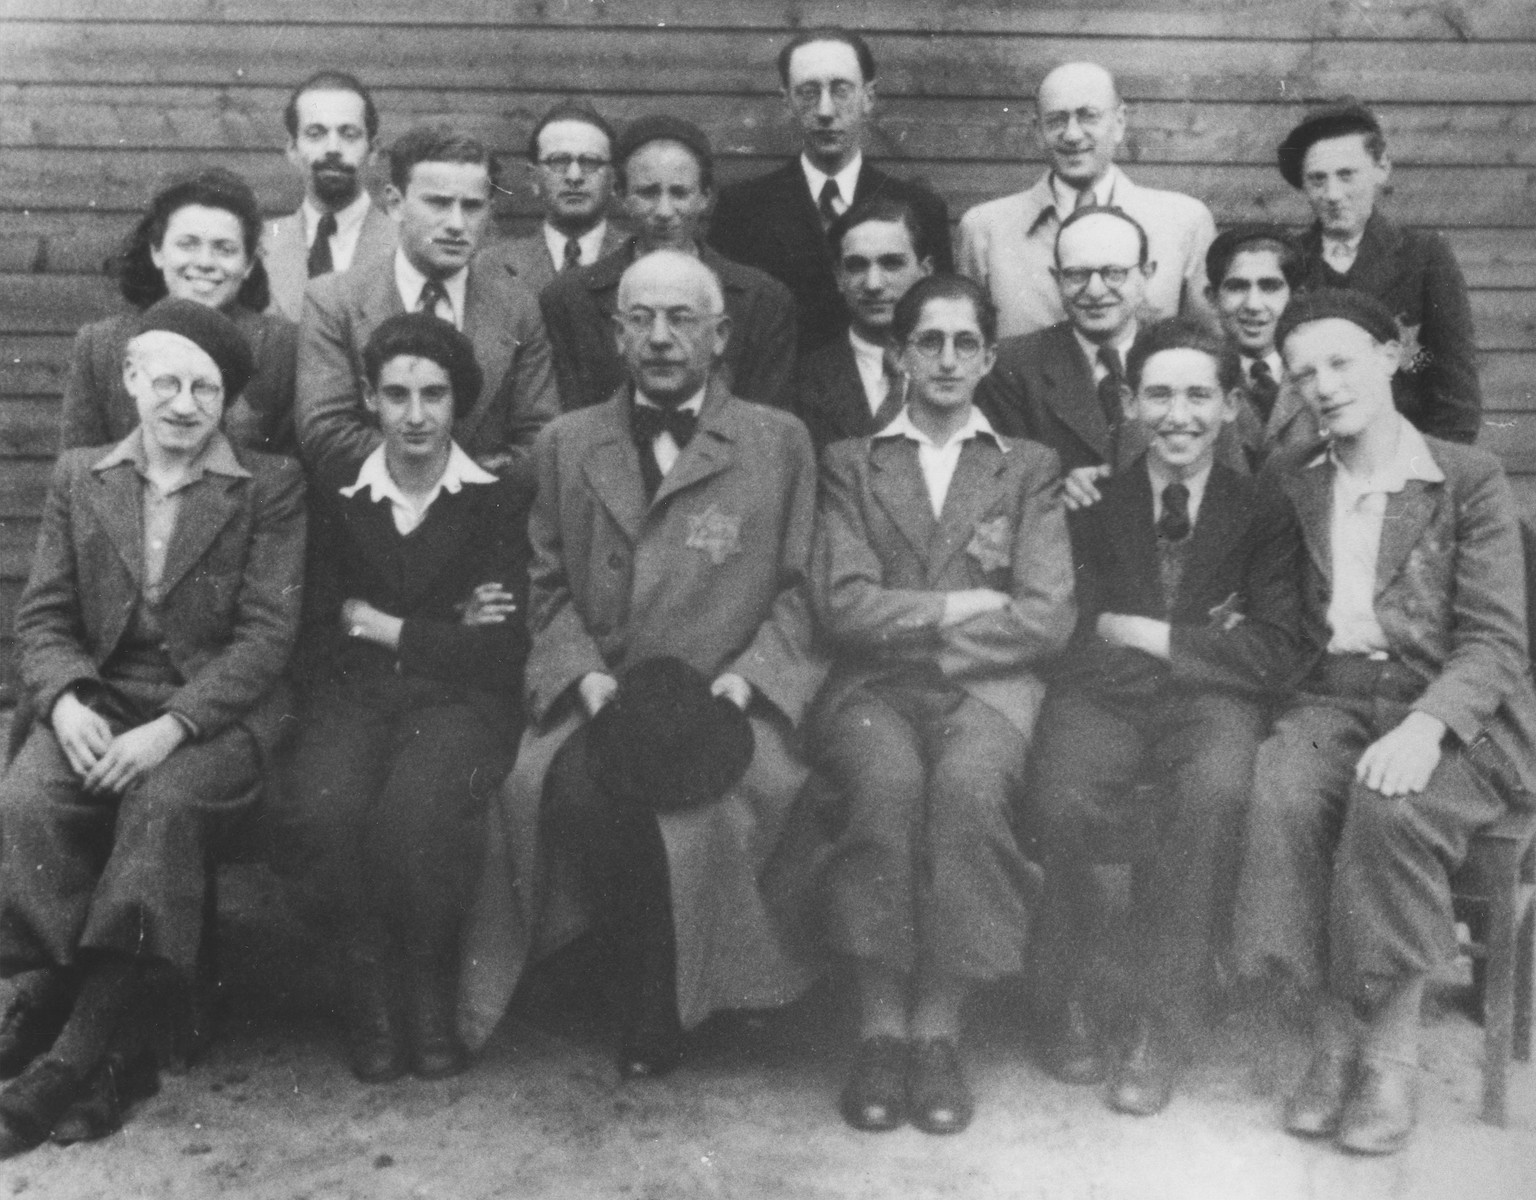 Group portrait of Jewish prisoners in the Westerbork transit camp.  Those pictured include Sigmund Samson and Paul de Vries.